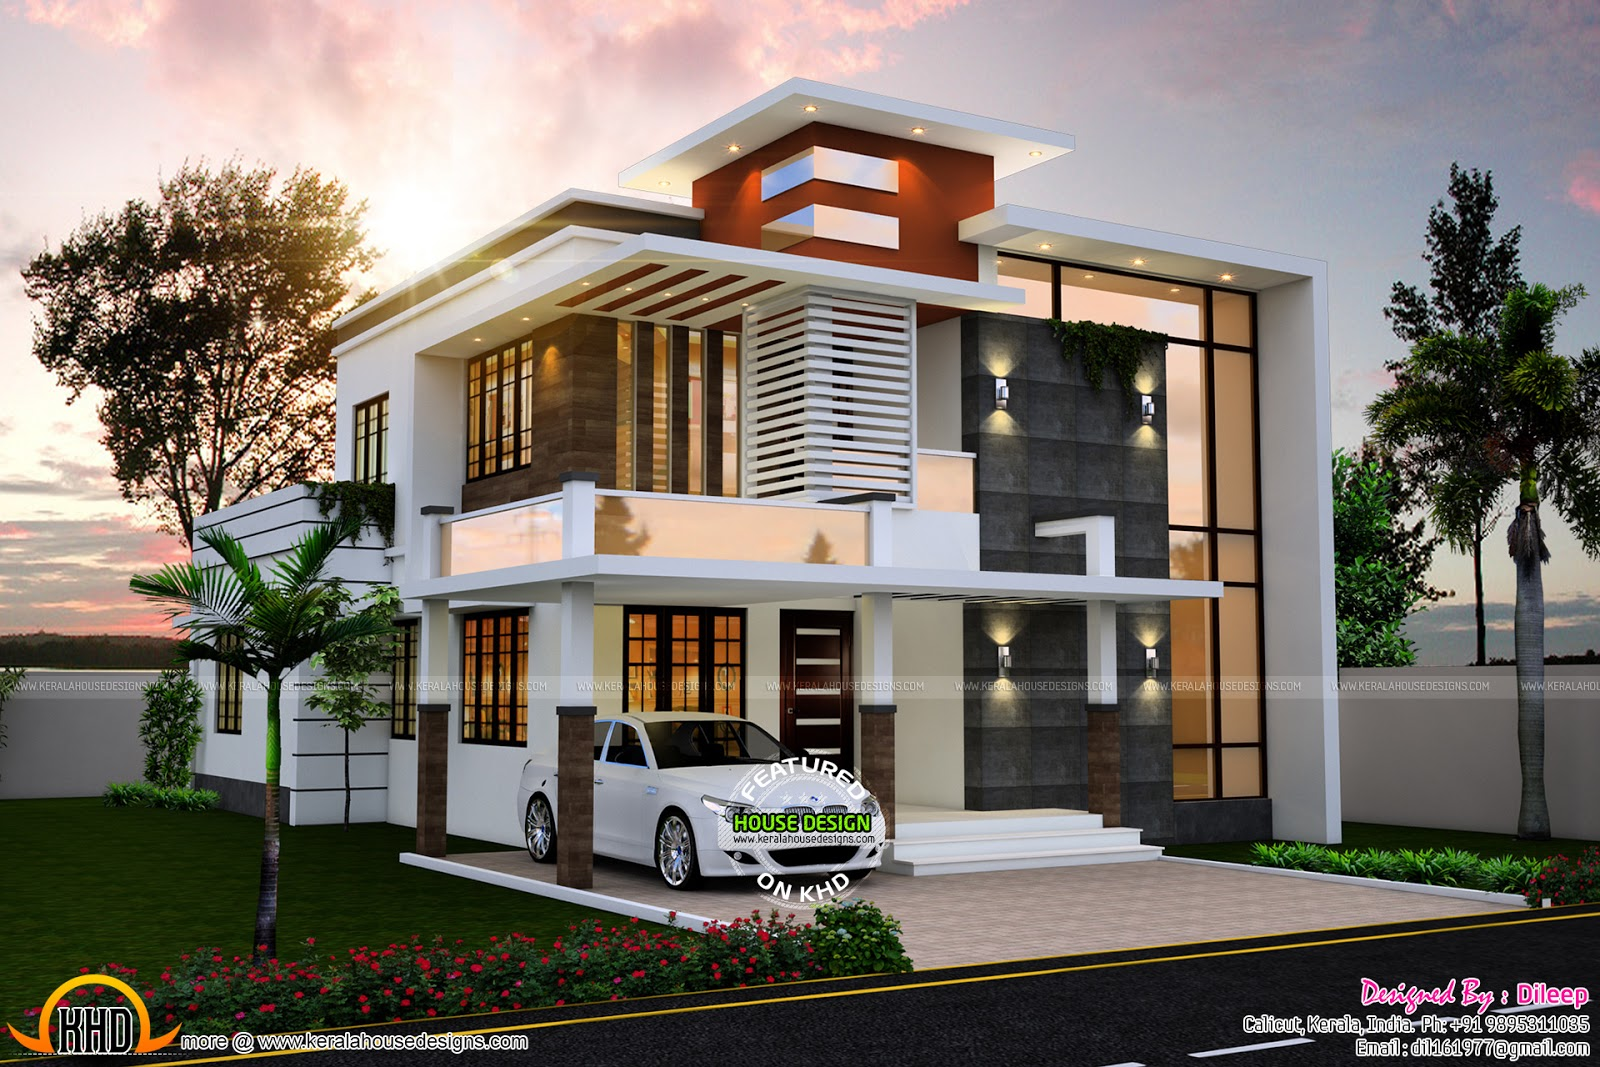 2194 sq ft nice contemporary house kerala home design and floor plans - New house design ...